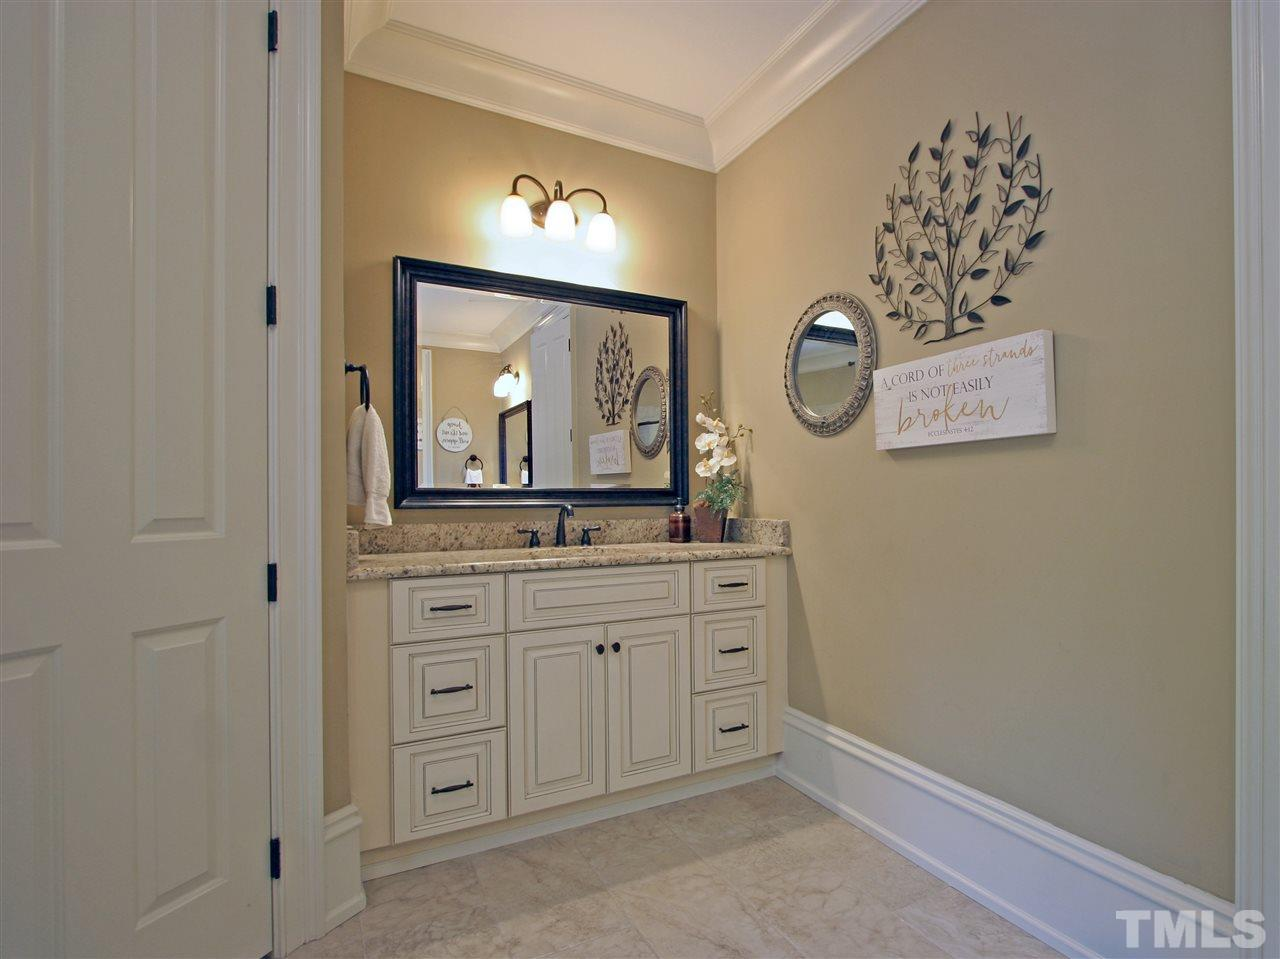 This view of the master bathroom showcases one of the two vanities. Note the beautiful cabinetry, granite countertops, oil-rubbed bronze plumbing and lighting fixtures, and the framed mirrors. Master bath has separate toilet enclosure as well.